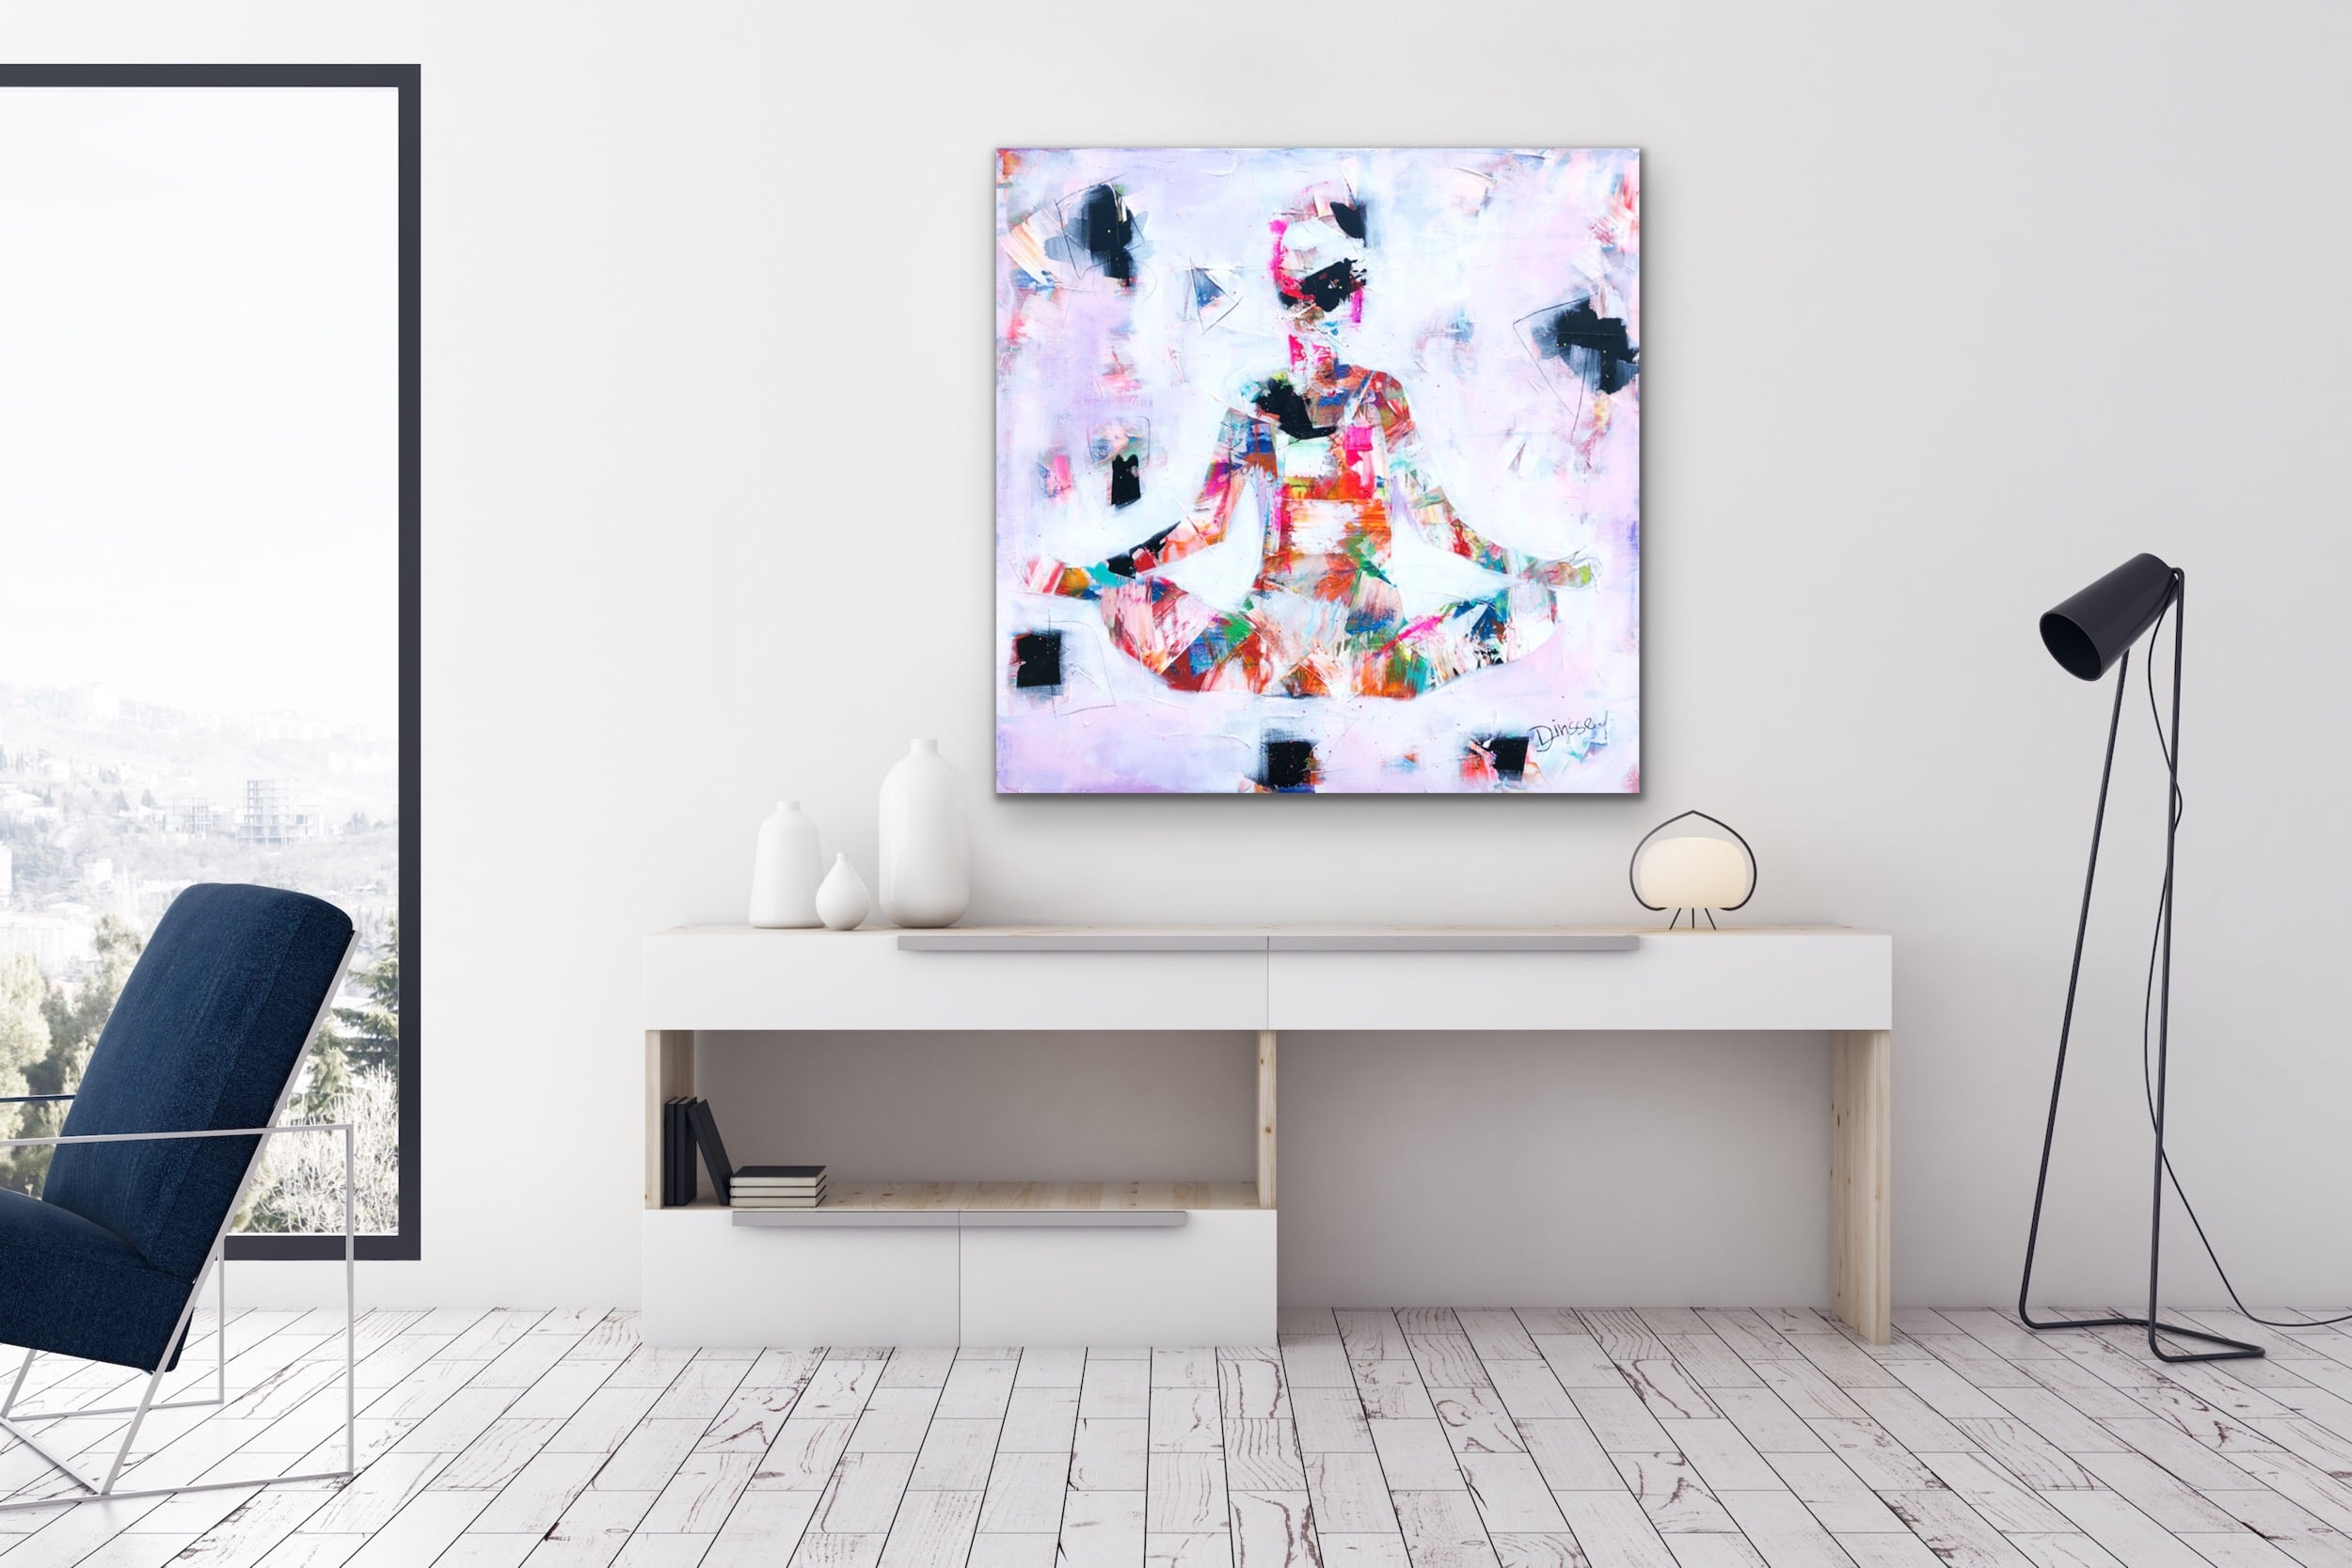 Harmony VI - Mixed Media Painting by Fine Artist Diana Linsse